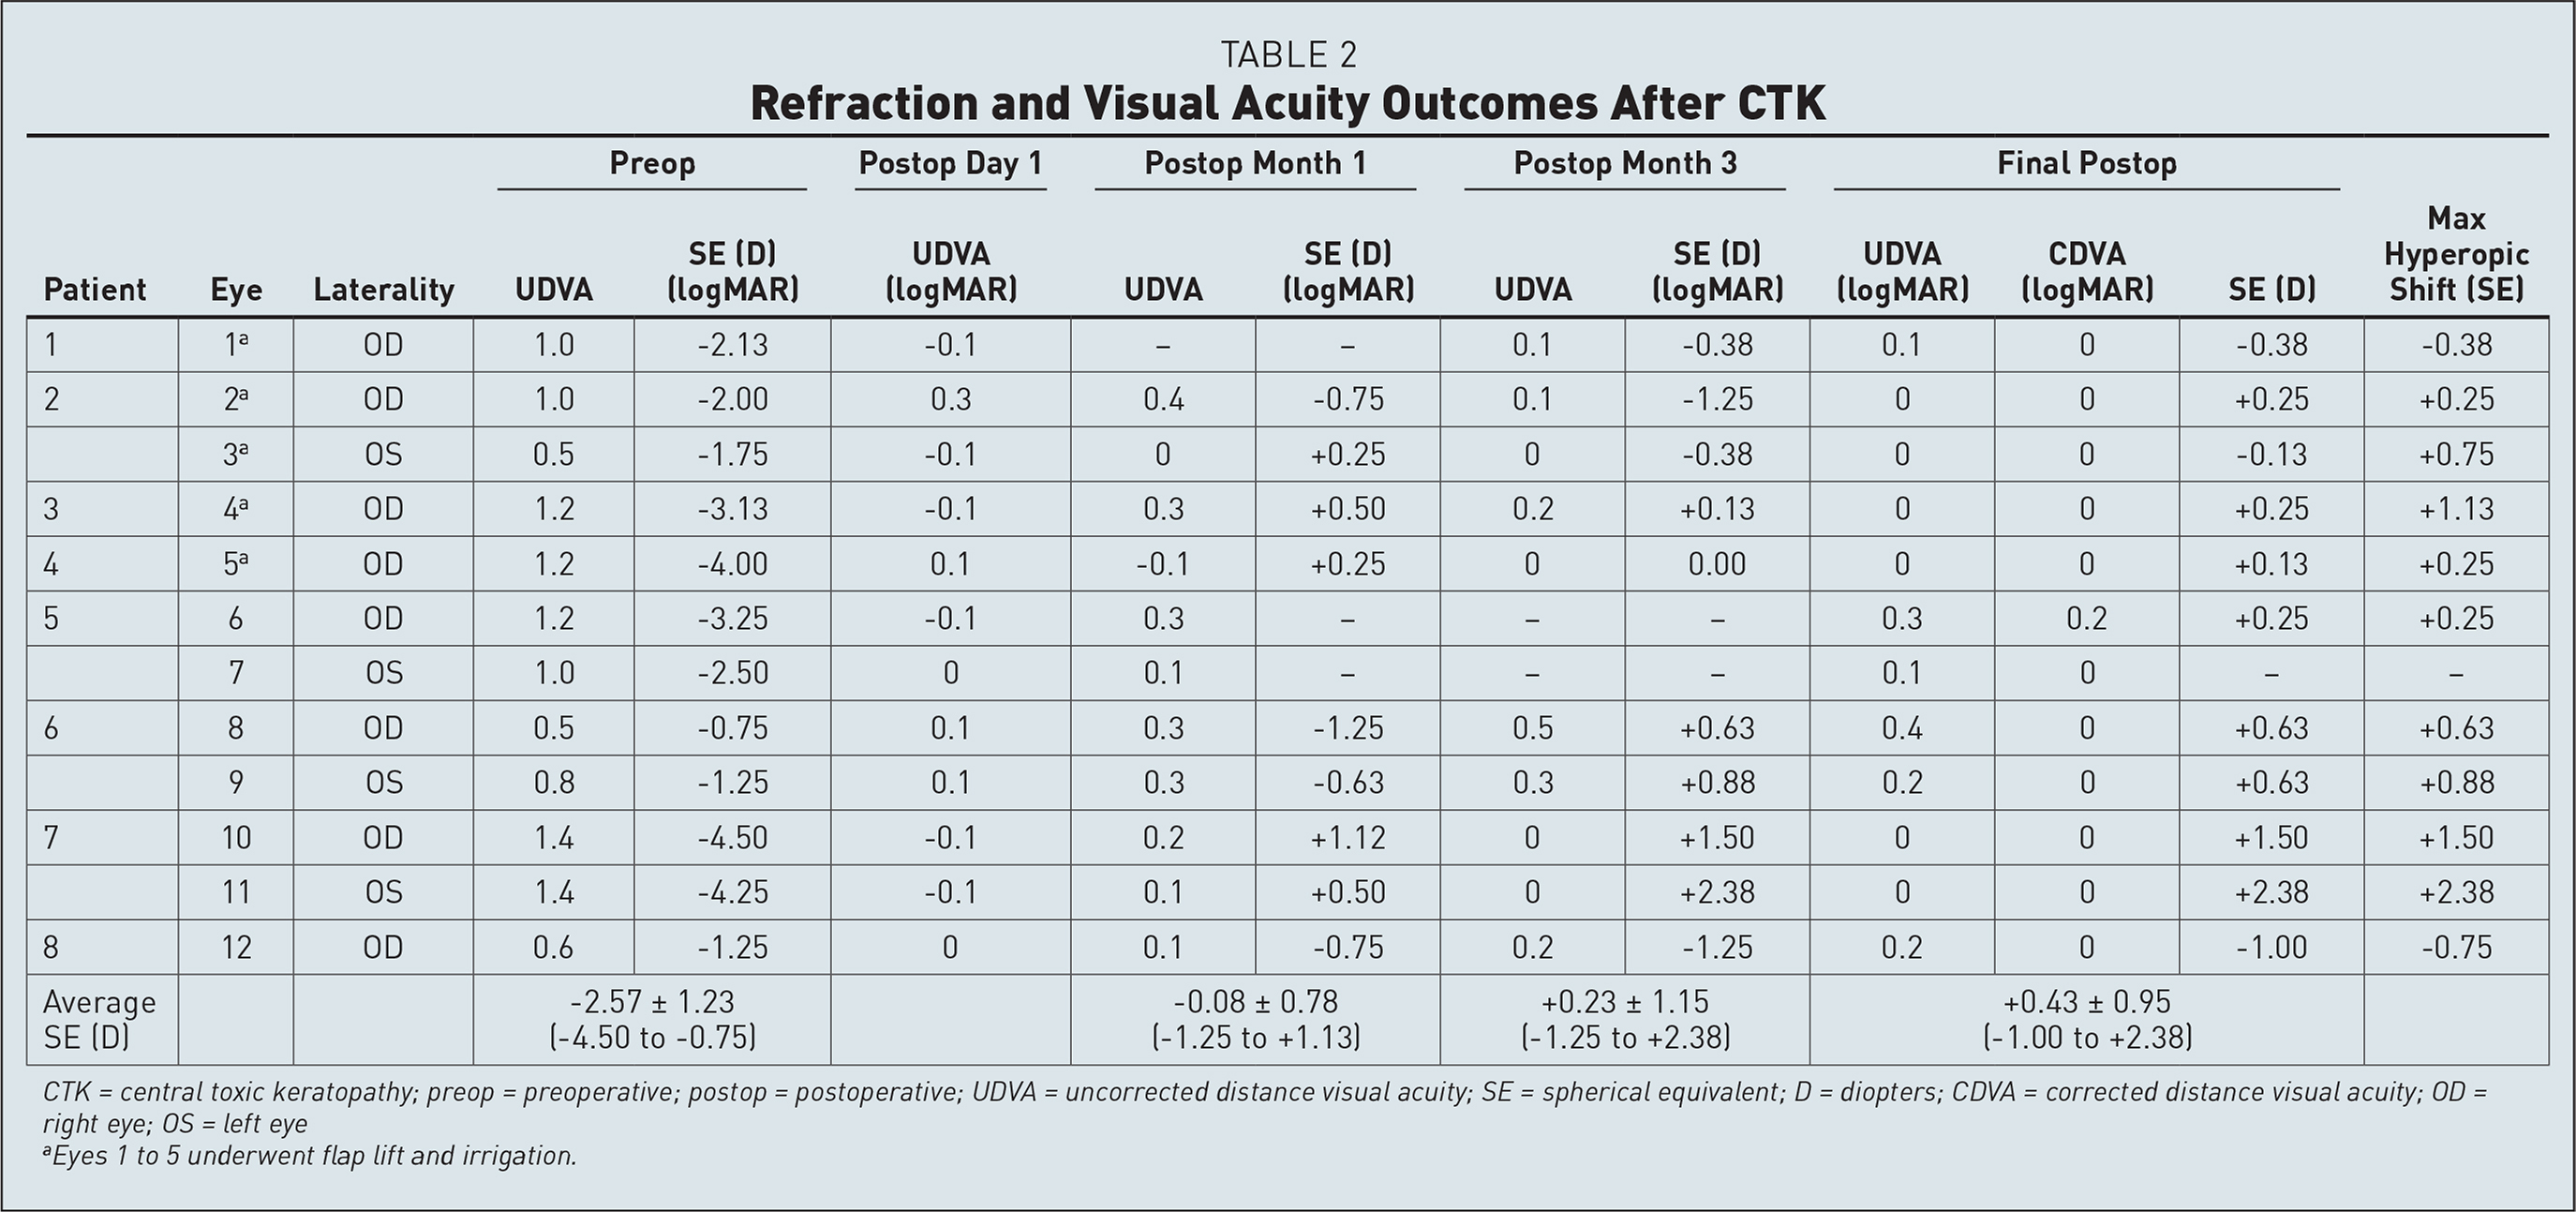 Refraction and Visual Acuity Outcomes After CTK